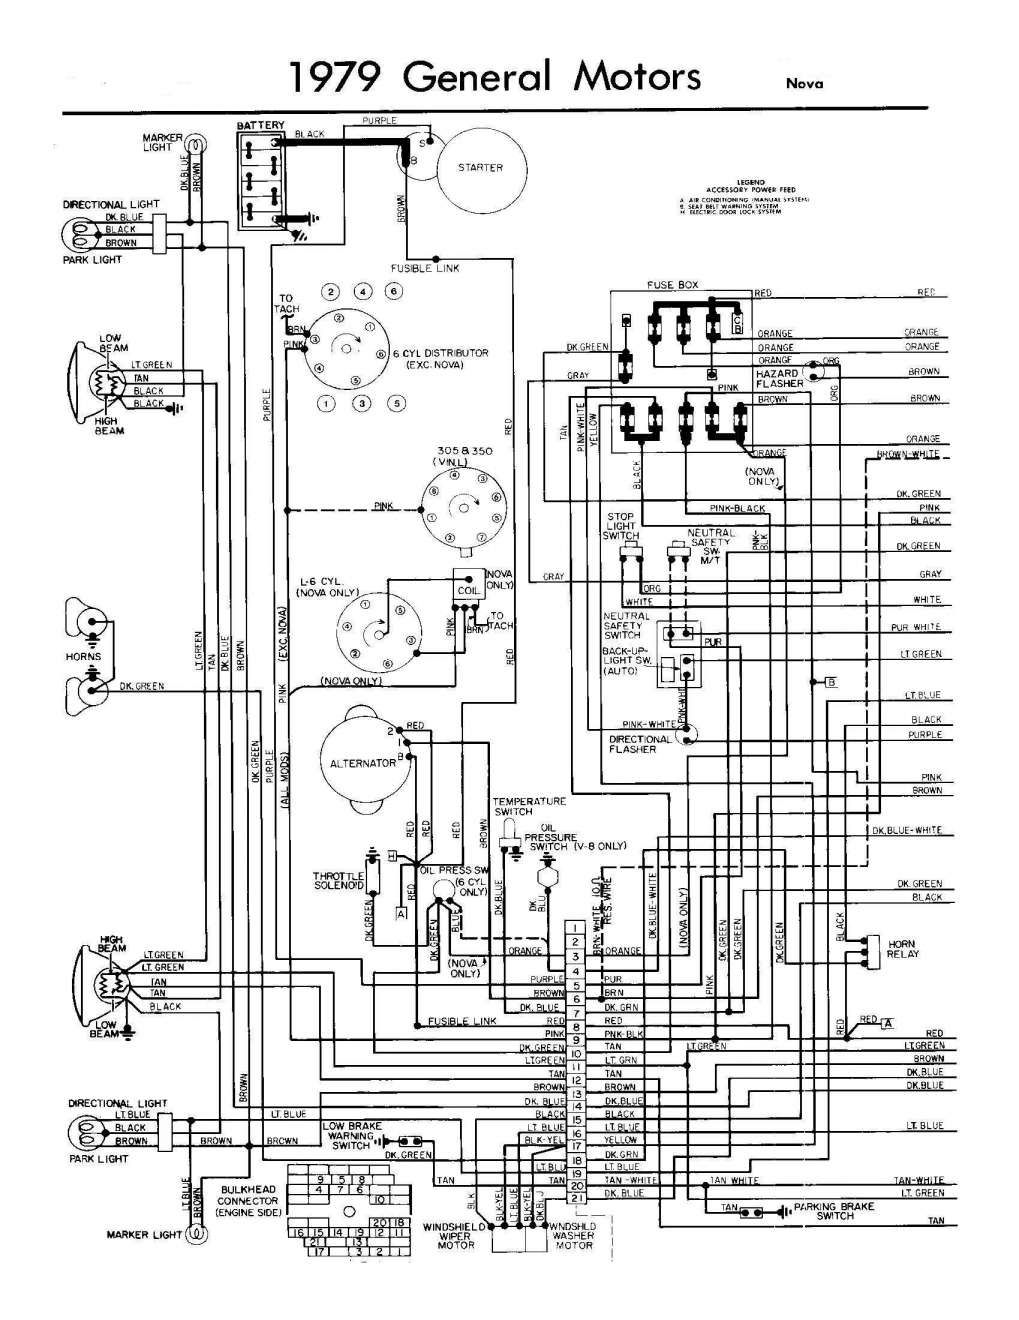 Marine Diesel Engine Wiring Diagram And Engine Wiring Harness Diagram Getting Started Of Chevy Trucks 1979 Chevy Truck 79 Chevy Truck